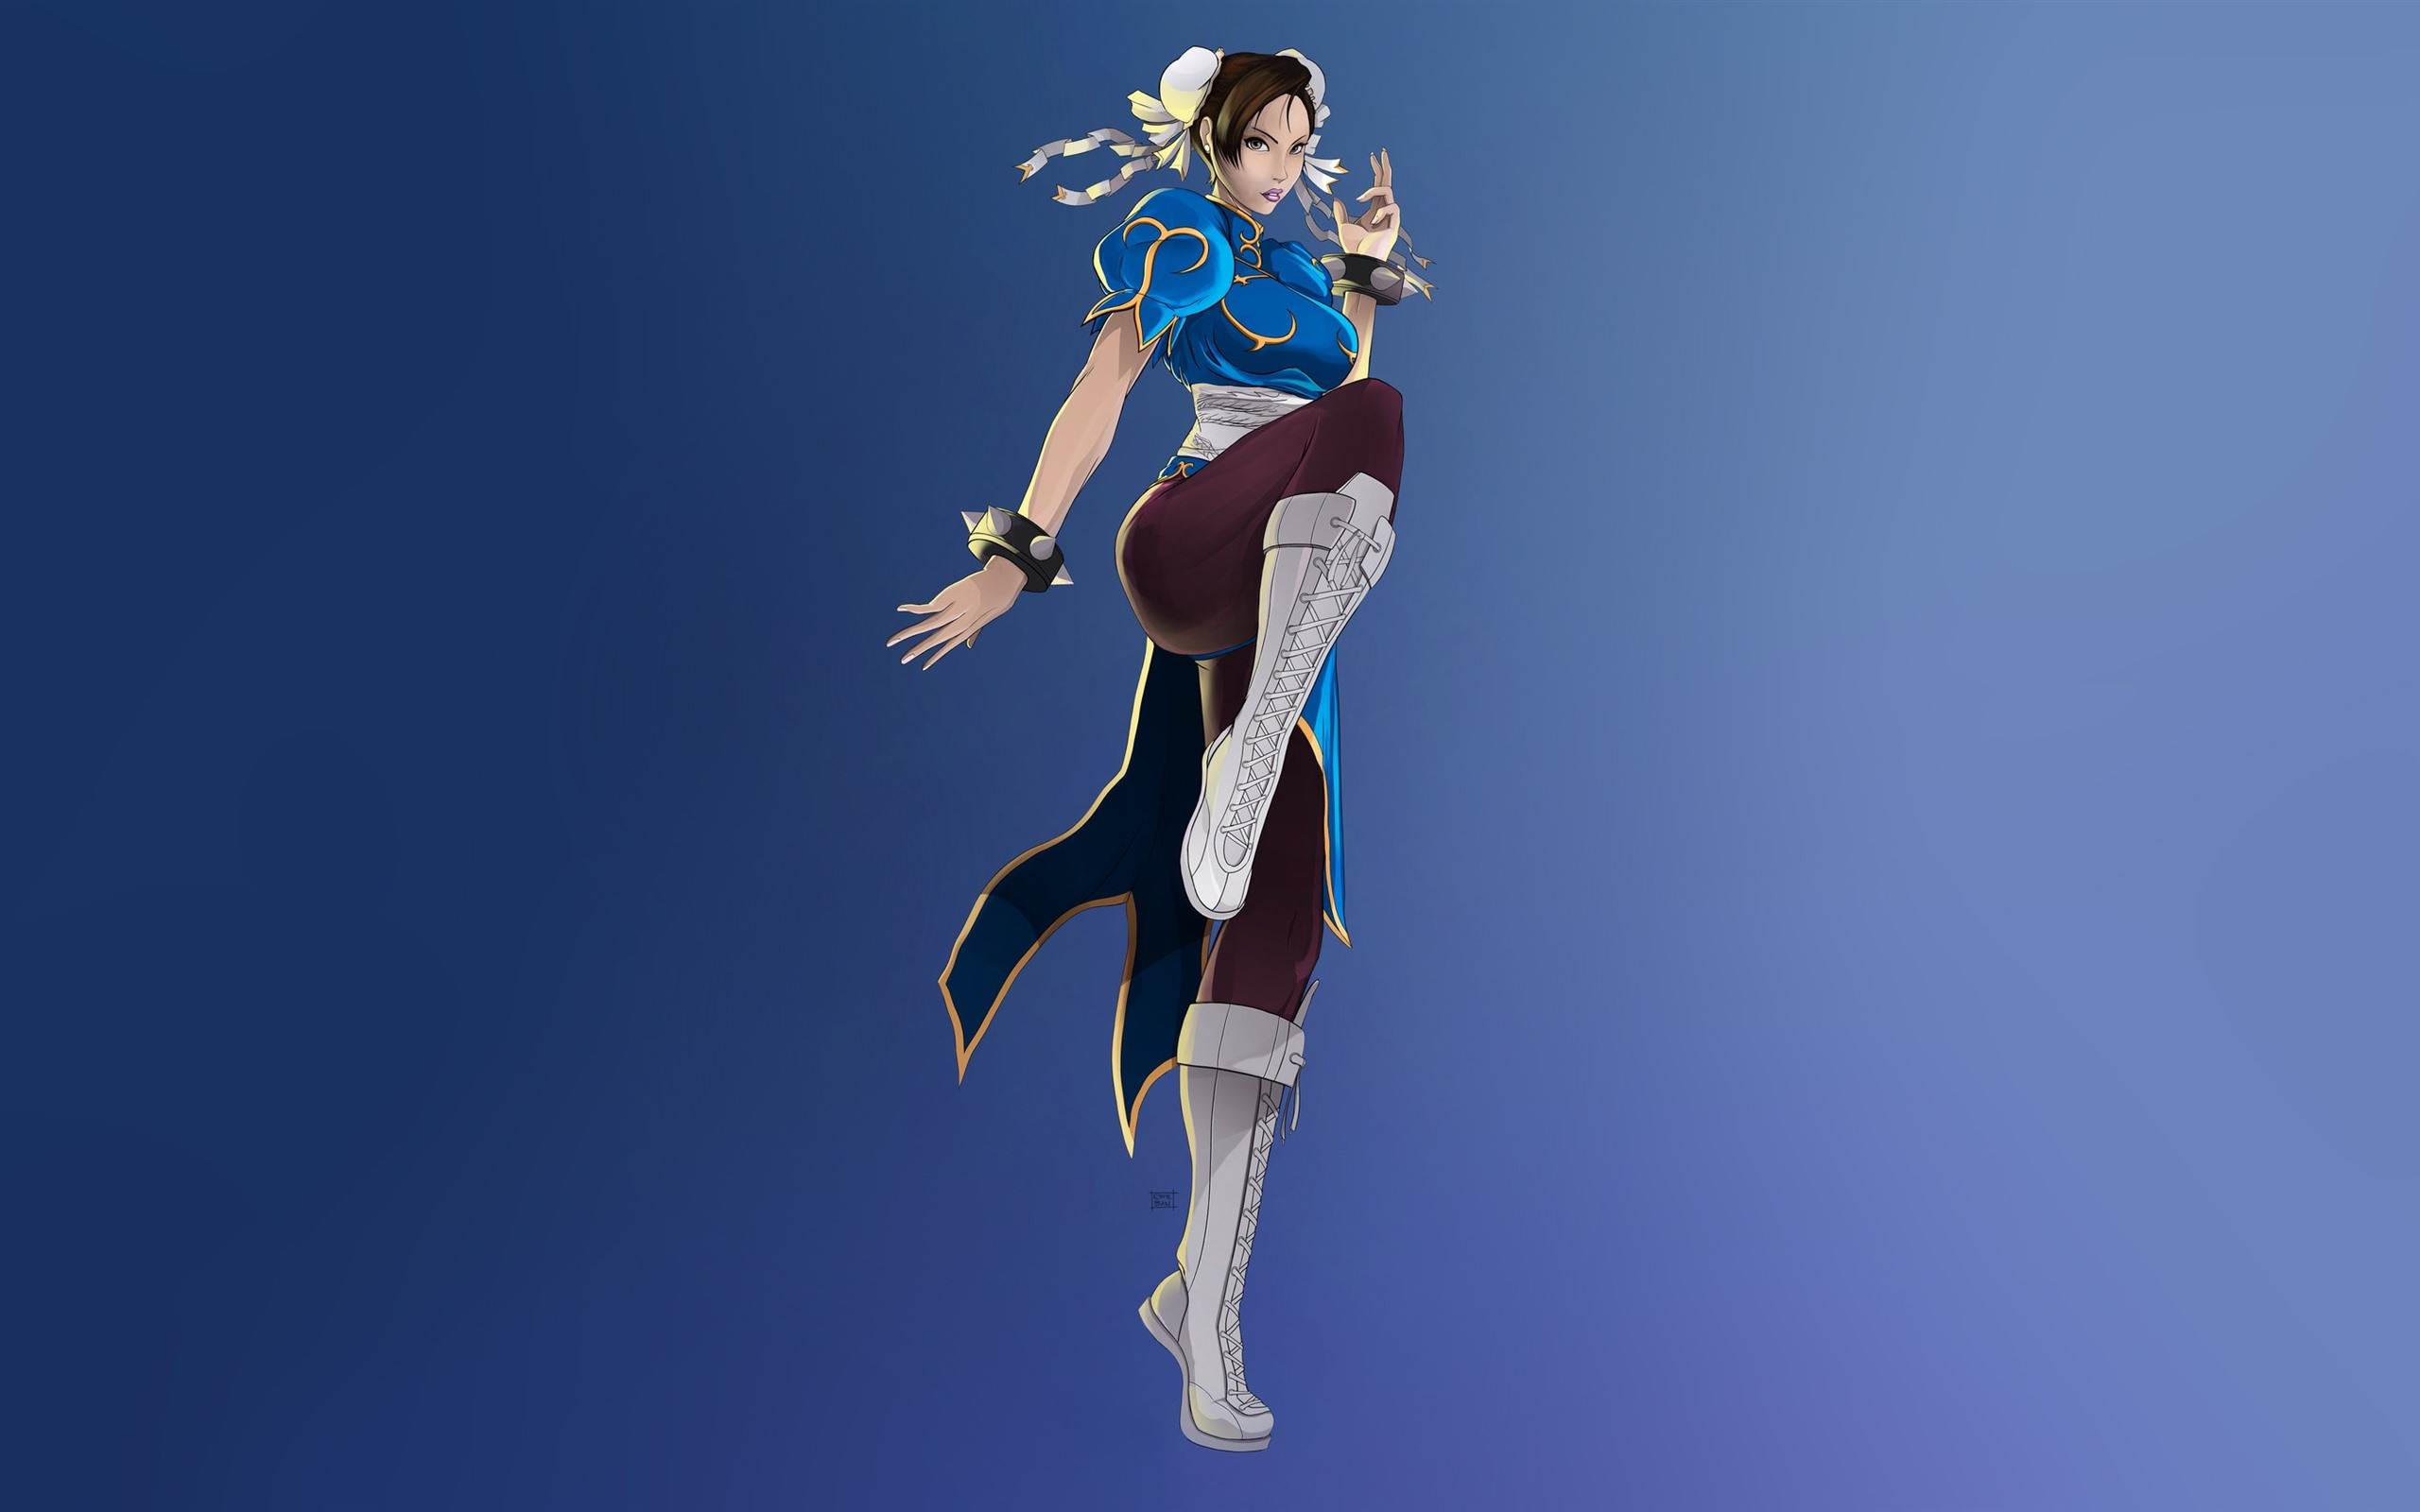 Wallpaper Street Fighter Chun Li Classic Game 2560x1600 Hd